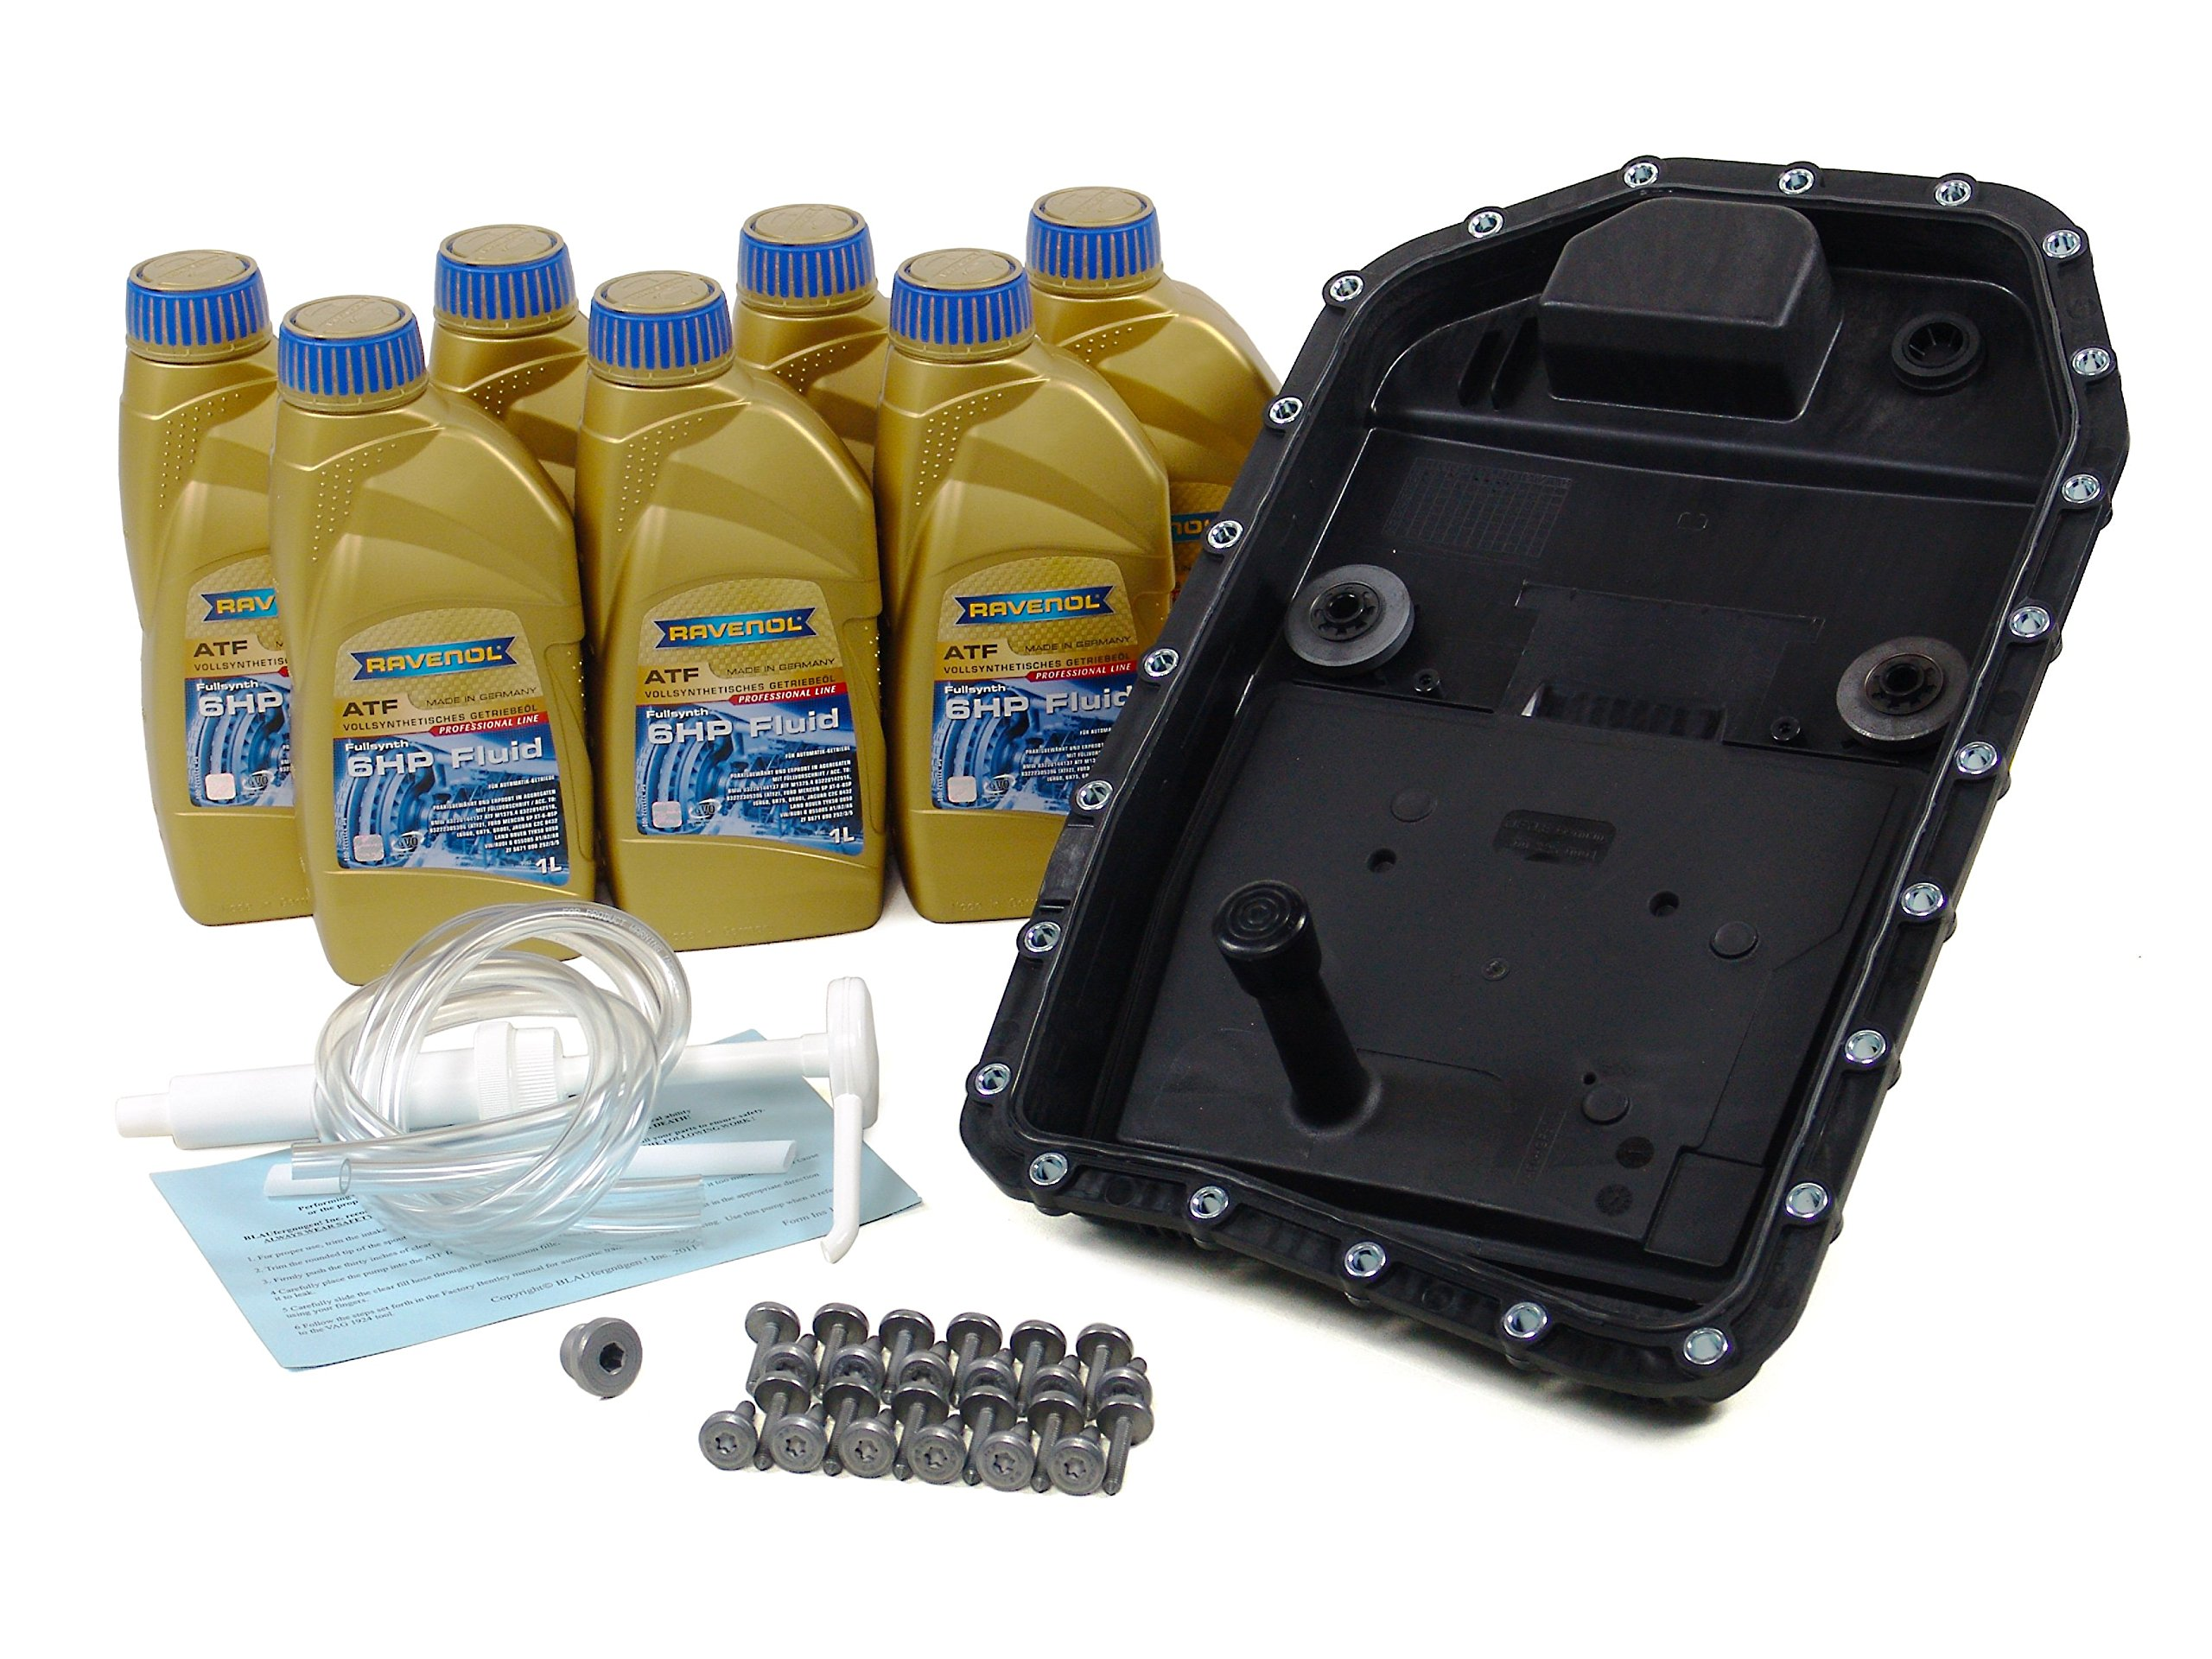 BLAU F2A1305-C BMW 325i ATF Automatic Transmission Fluid Filter Kit - E90 - 2006 w/ 6 Speed Automatic GA6HP19Z